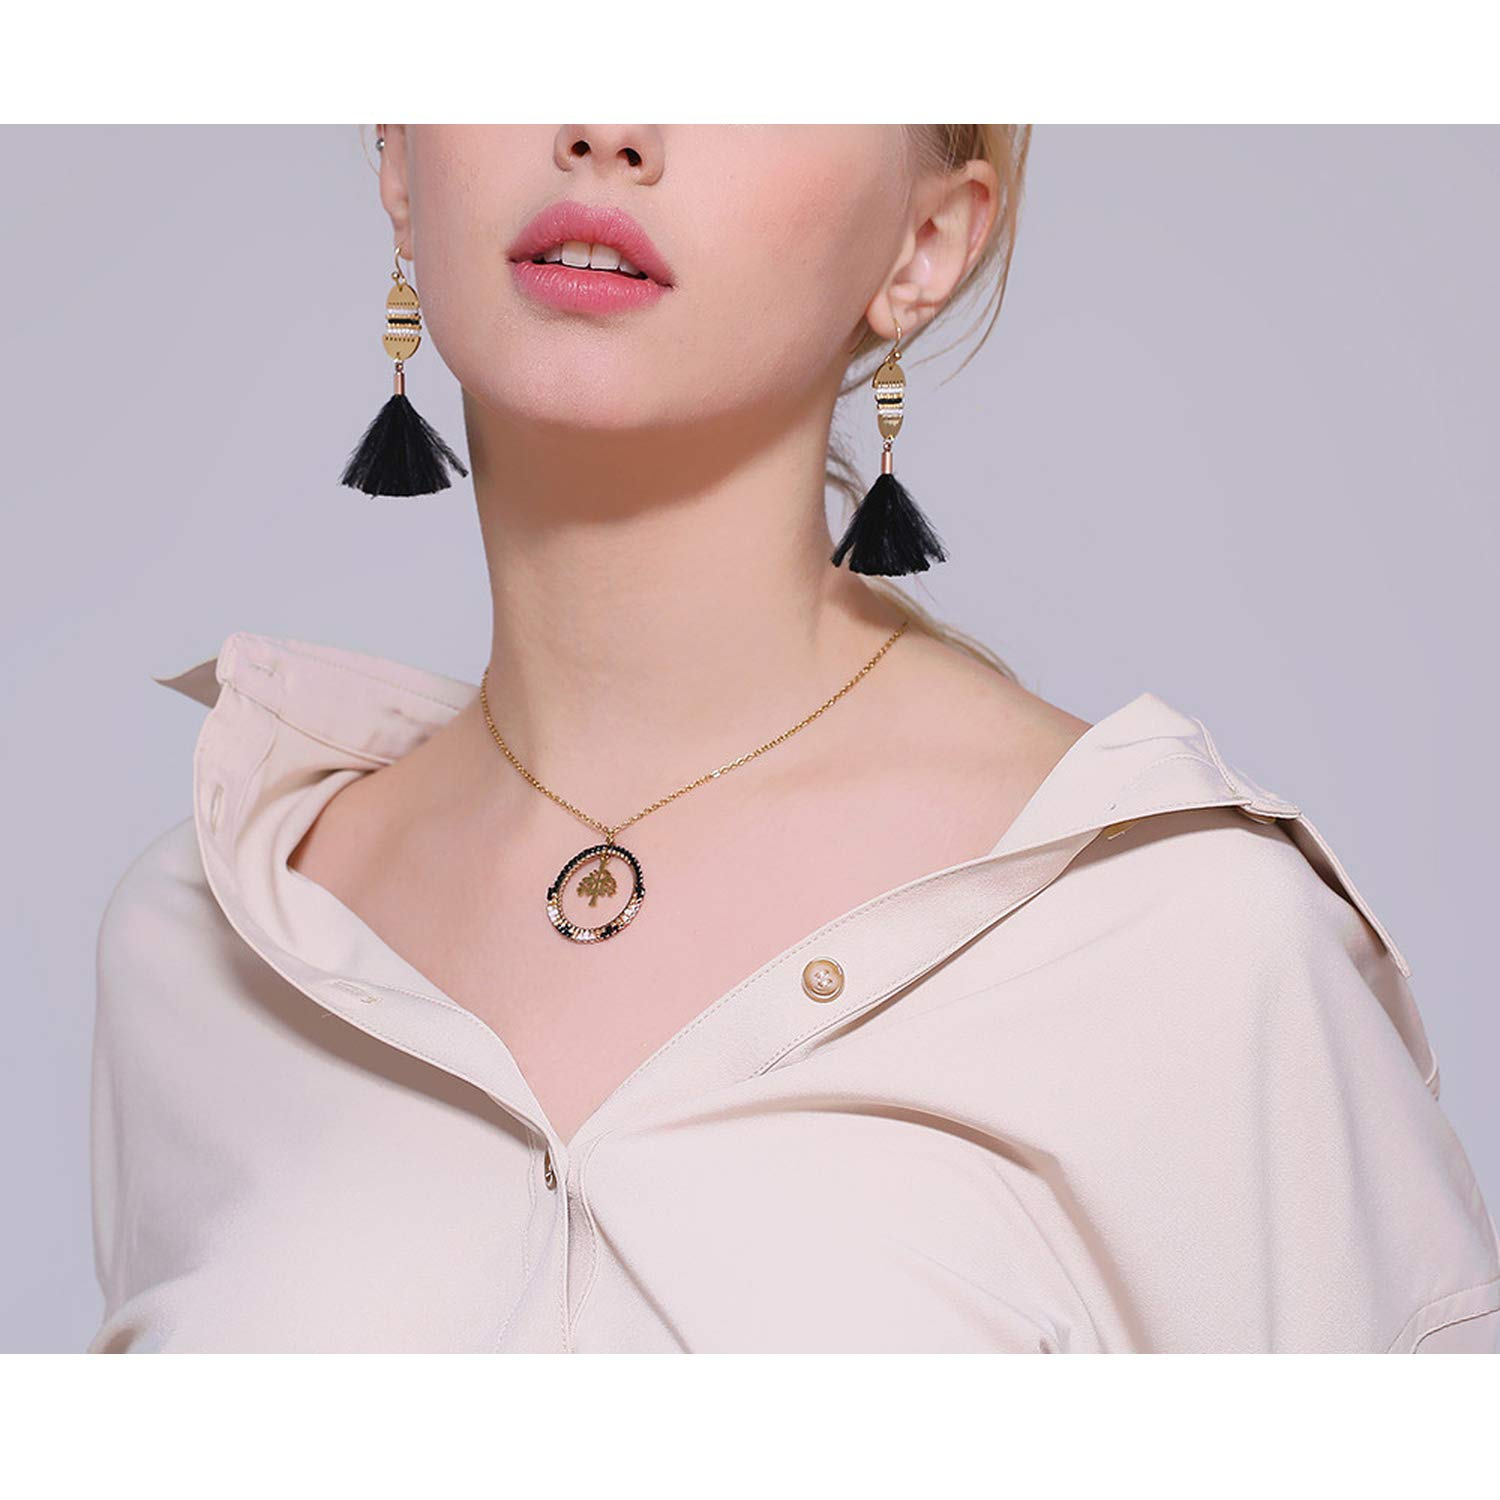 Minusone Golden Chain Necklace Stainless Steel Round Tree Pendant Fashion Delicate Short Chain Jewelry